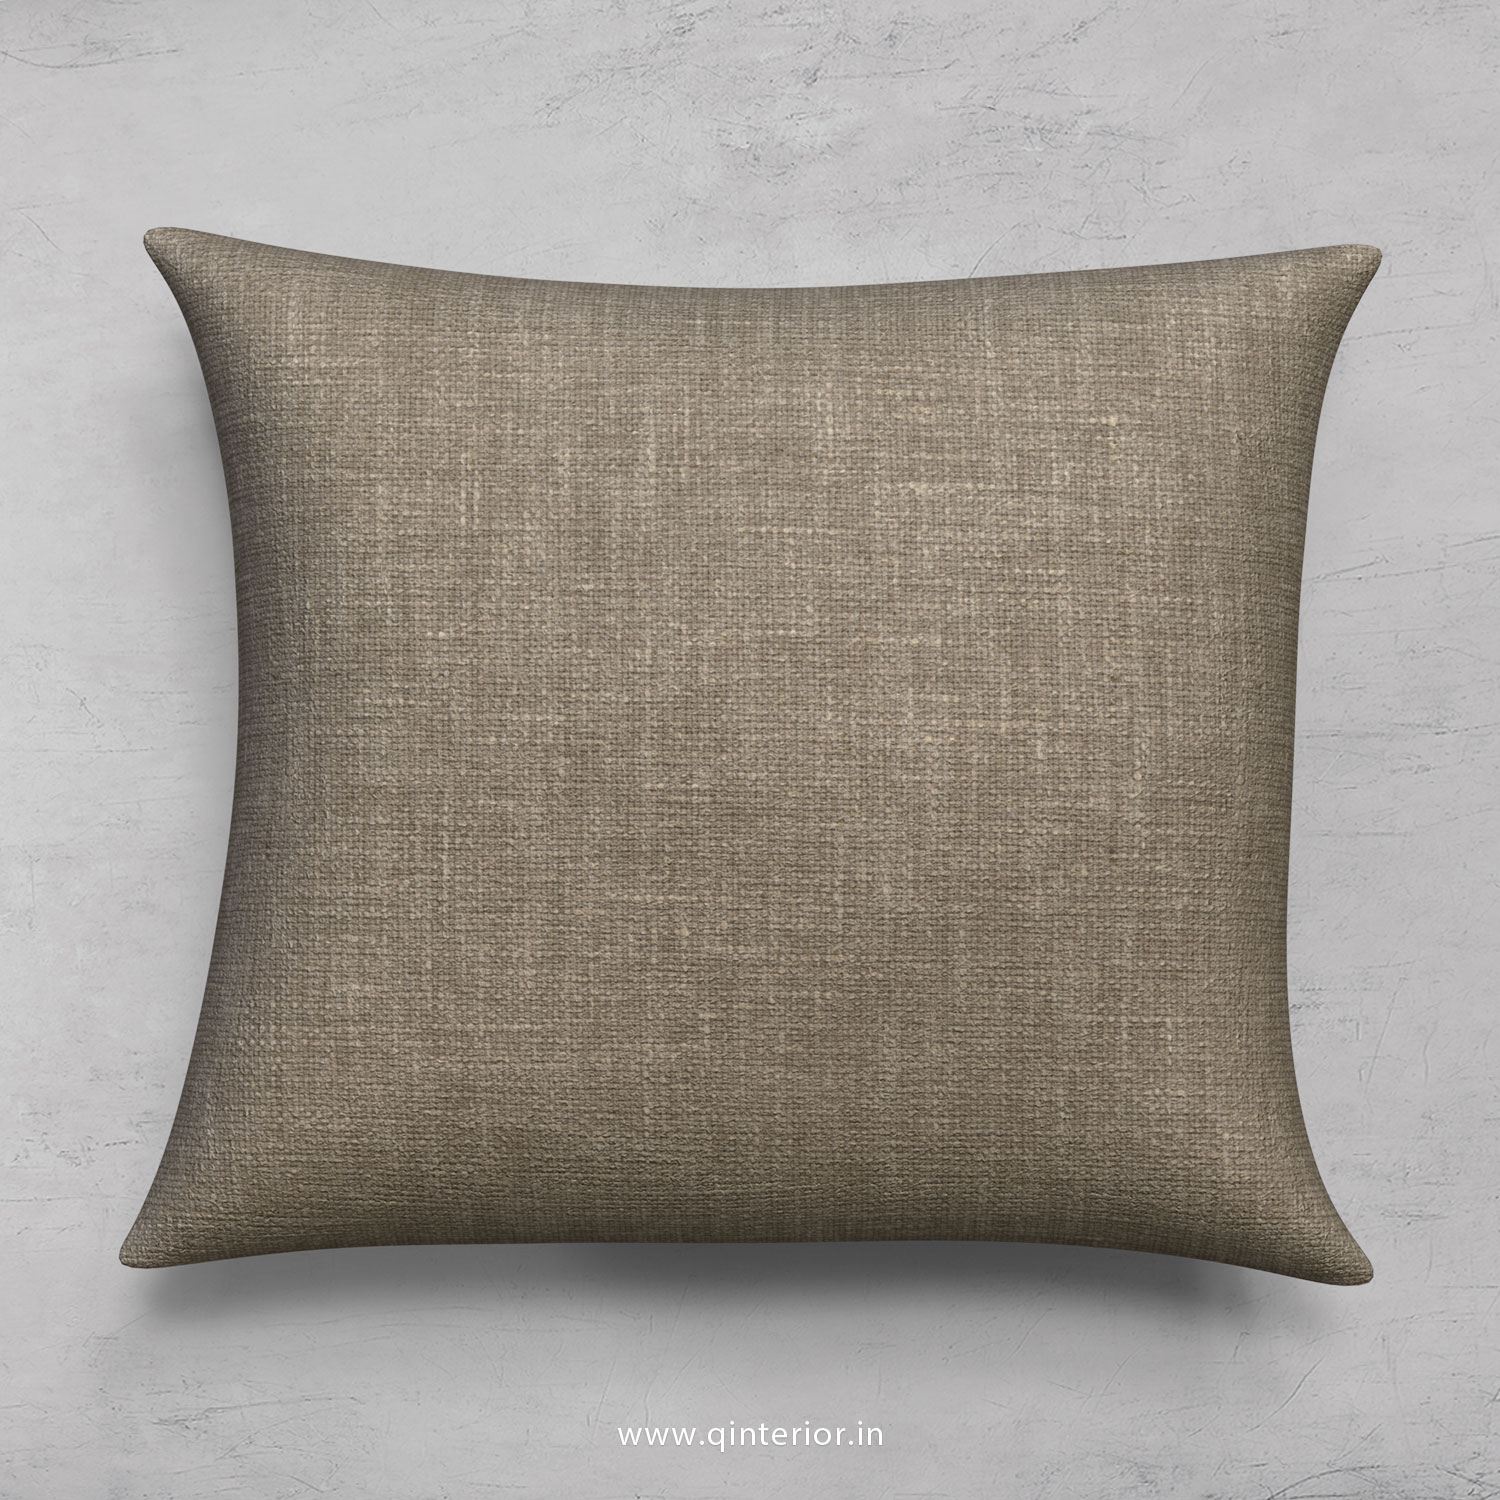 Cushion With Cushion Cover in Marvello- CUS001 MV06